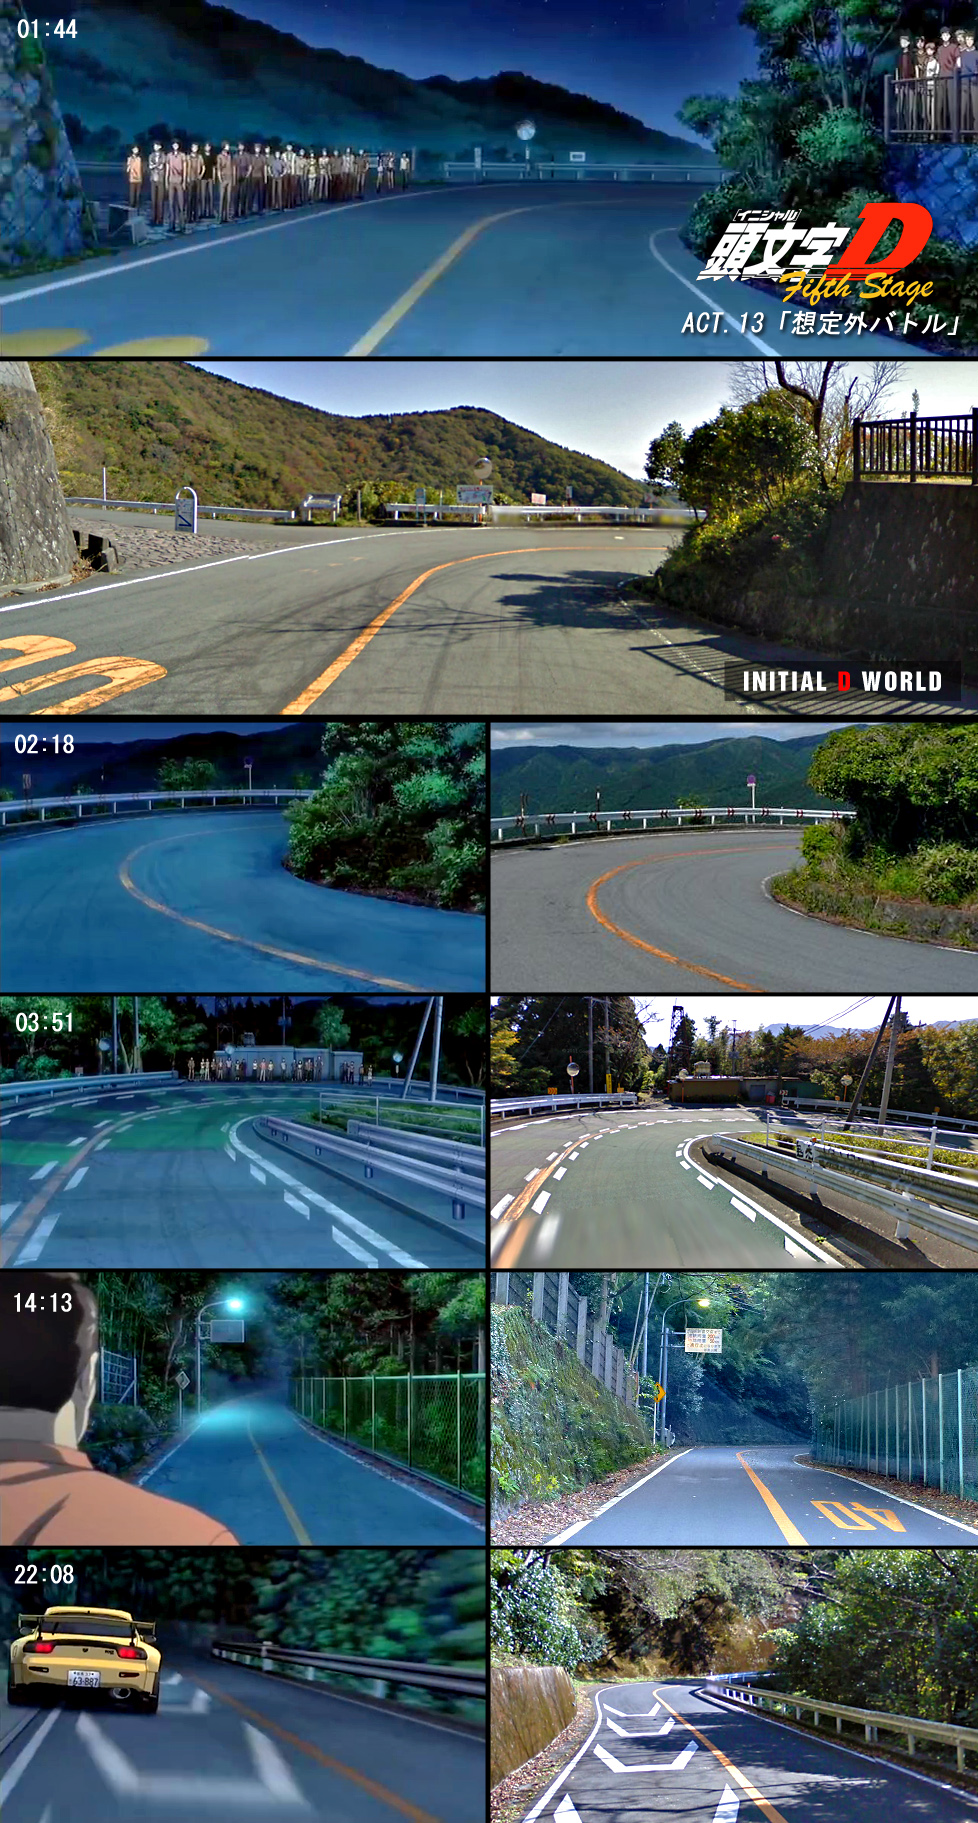 Initial D World Discussion Board Forums Fifth Stage Anime Vs Real Life